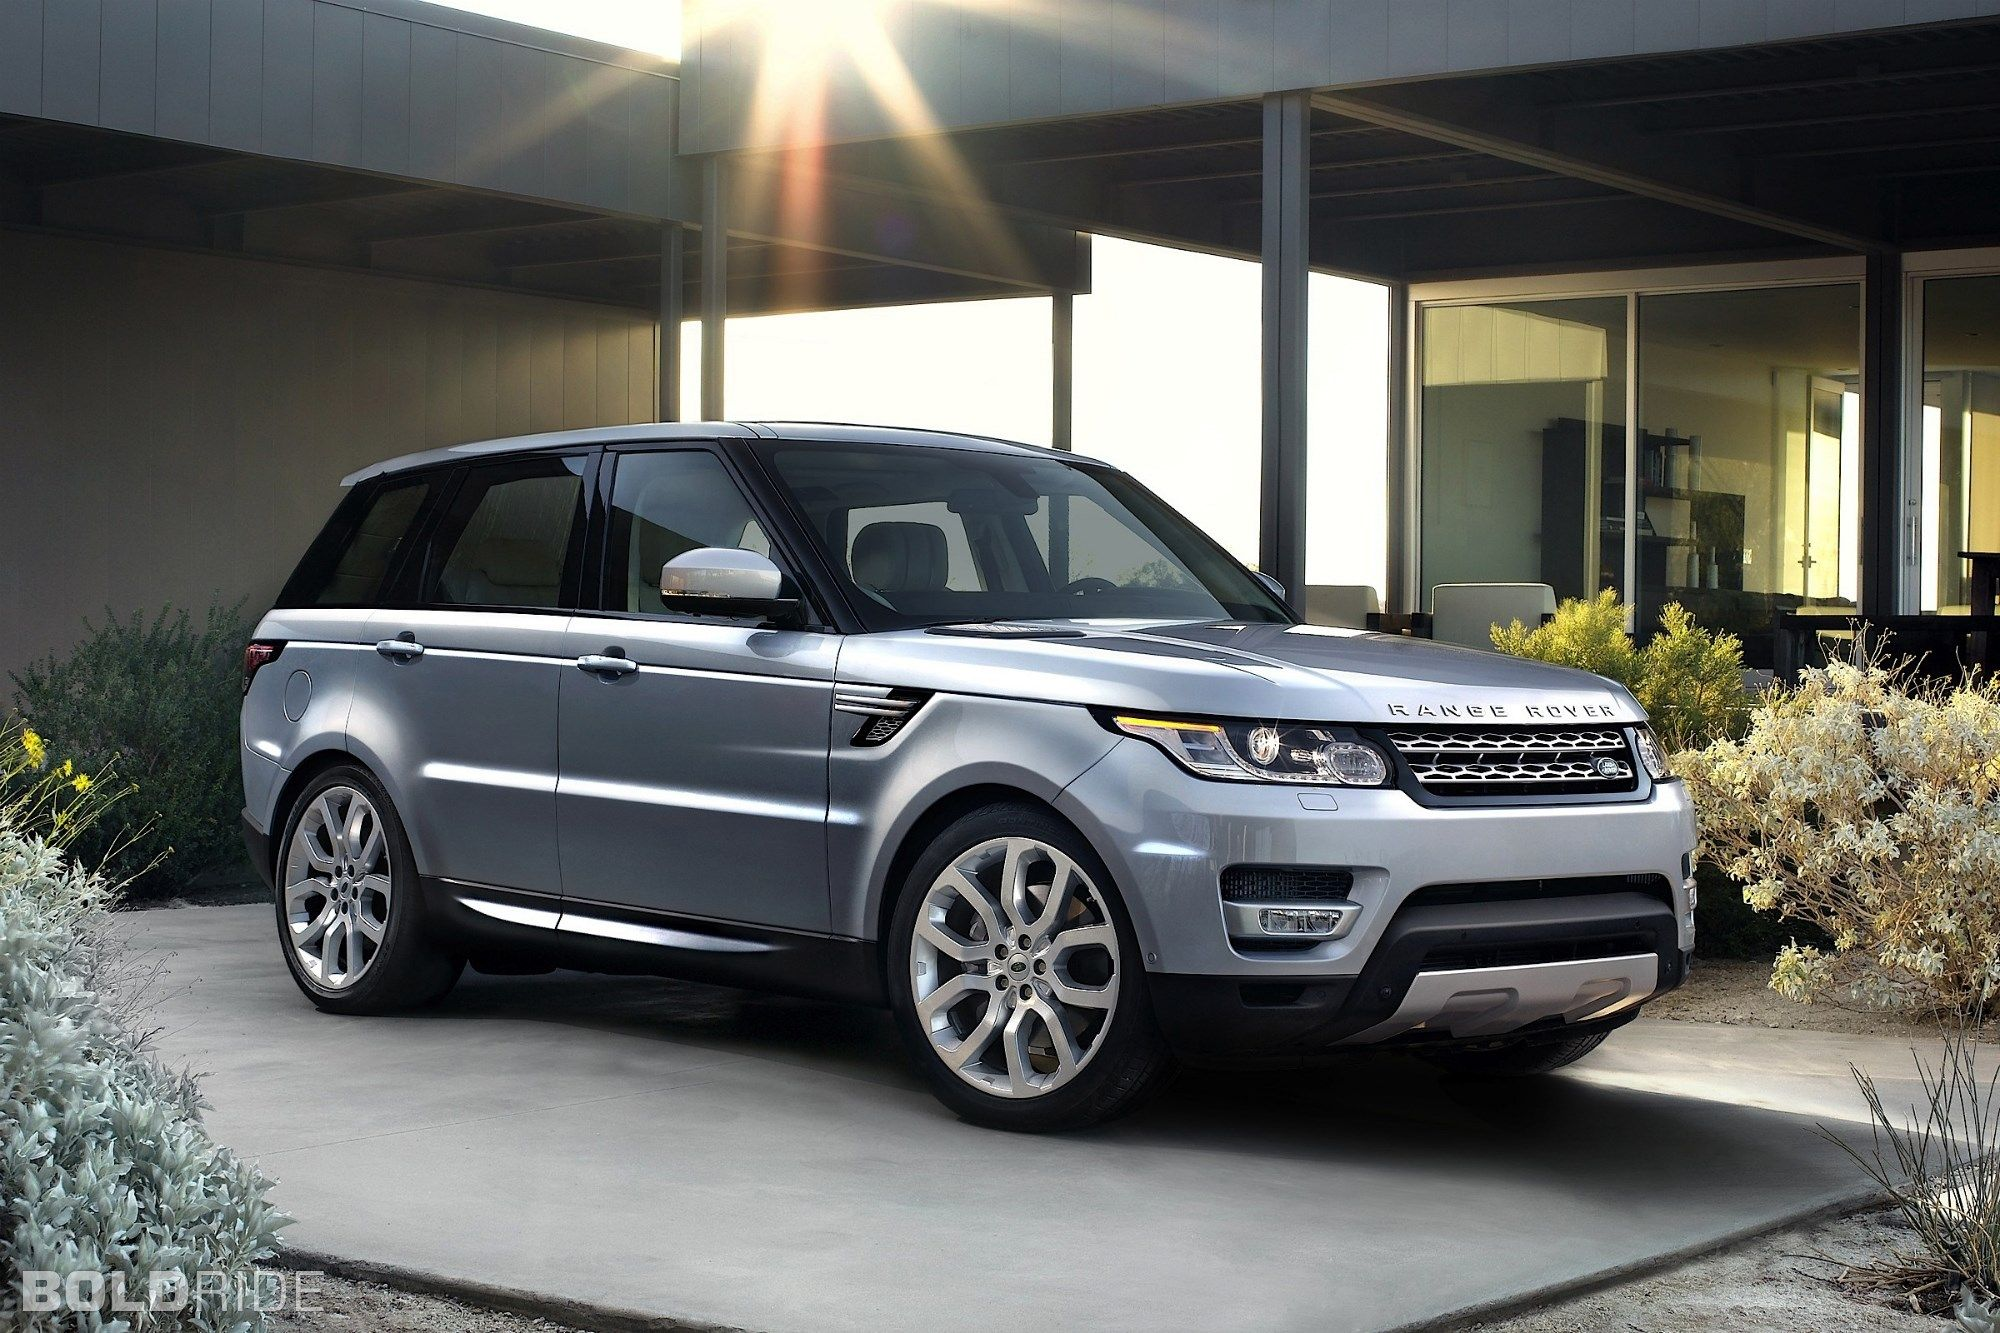 terrific range rover sport wallpaper sharovarka